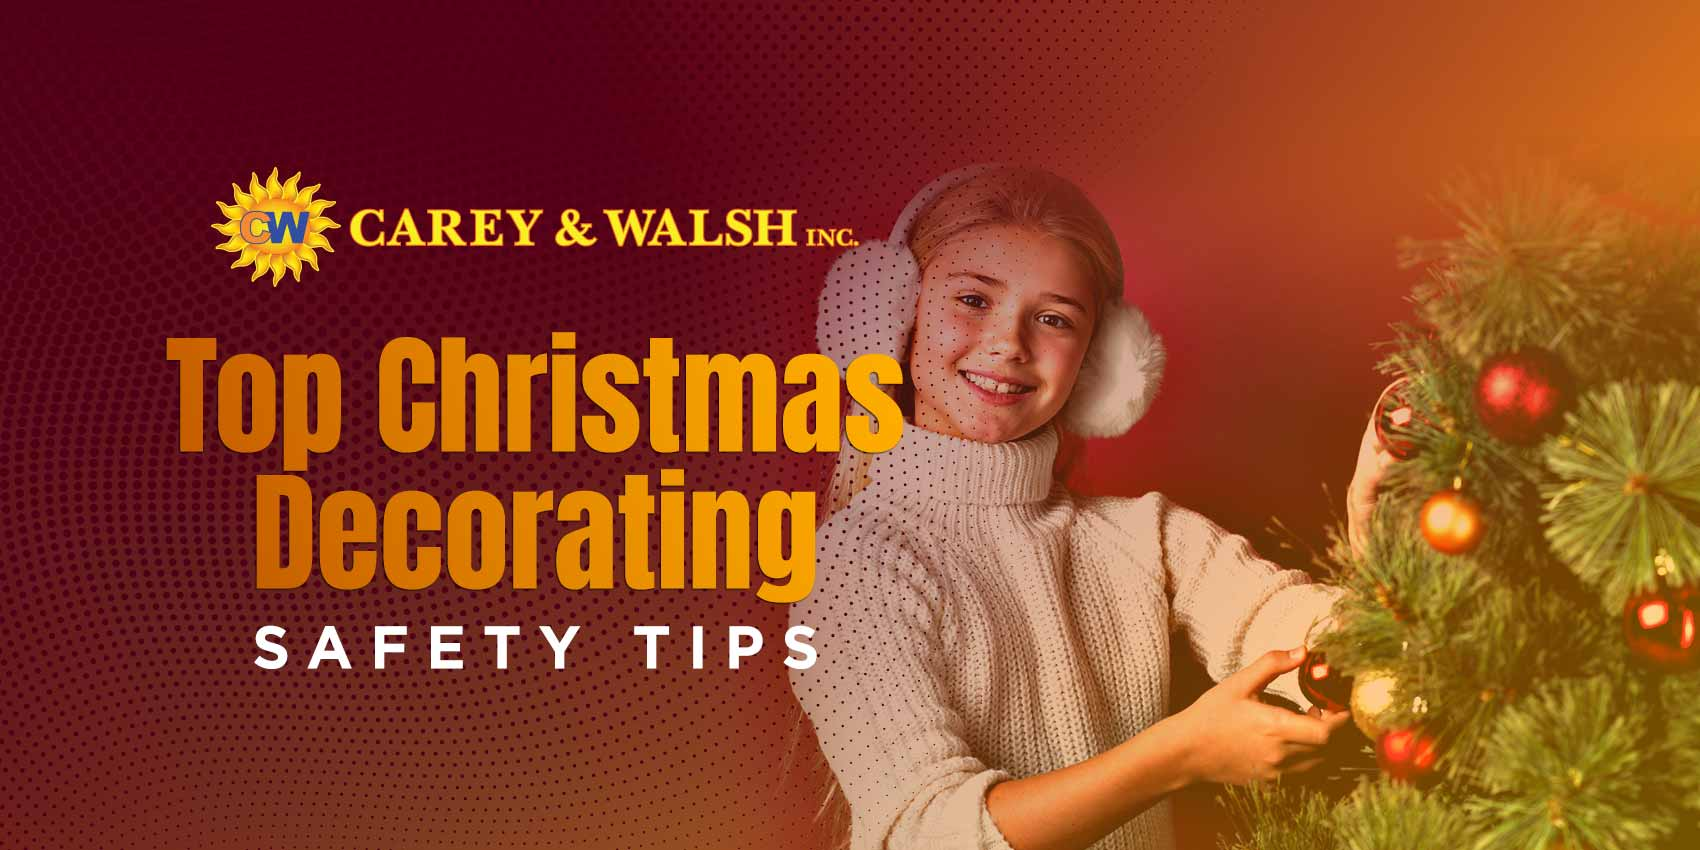 Top Christmas Decorating Safety Tips